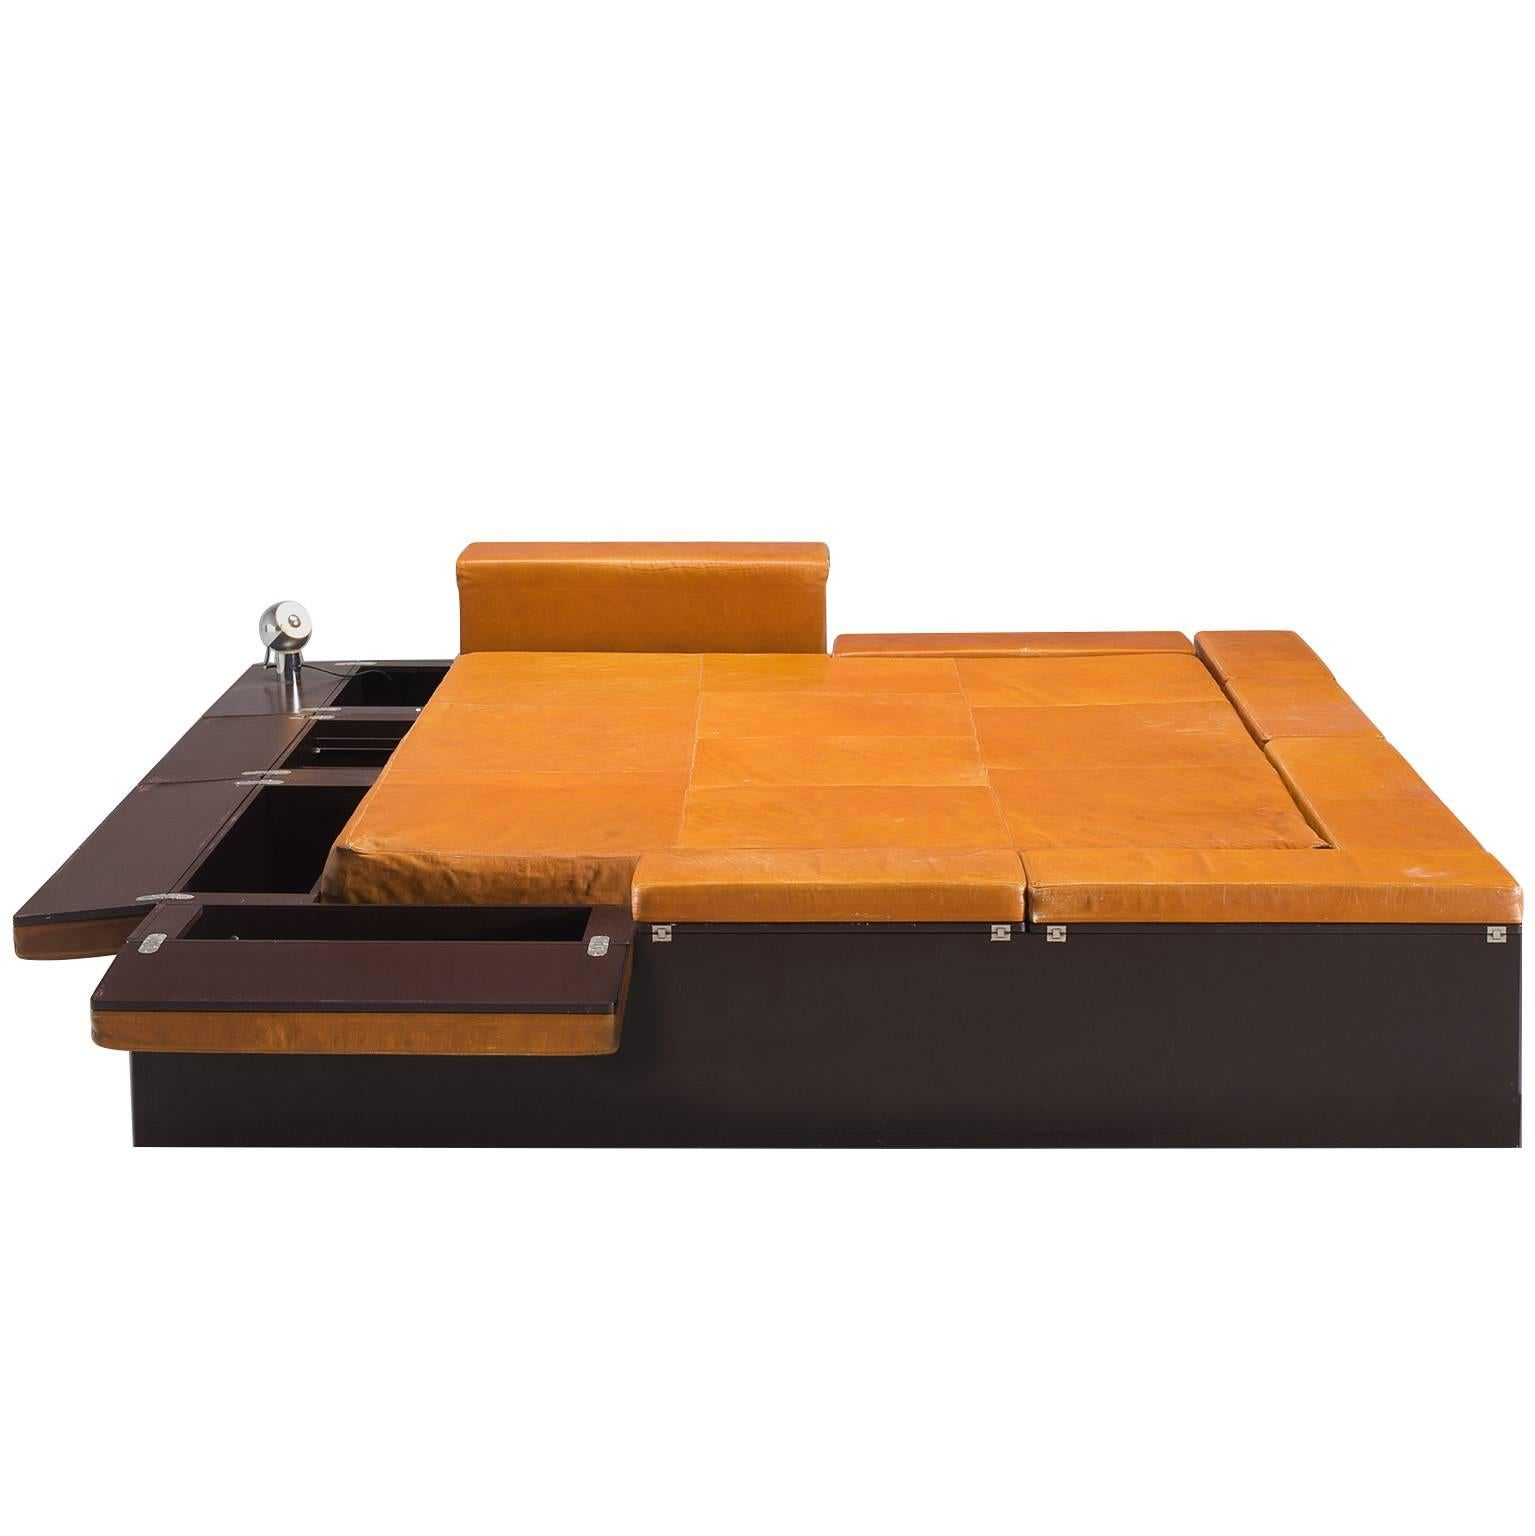 Italian Cognac Leather Bed With Goffredo Reggiani Lamps